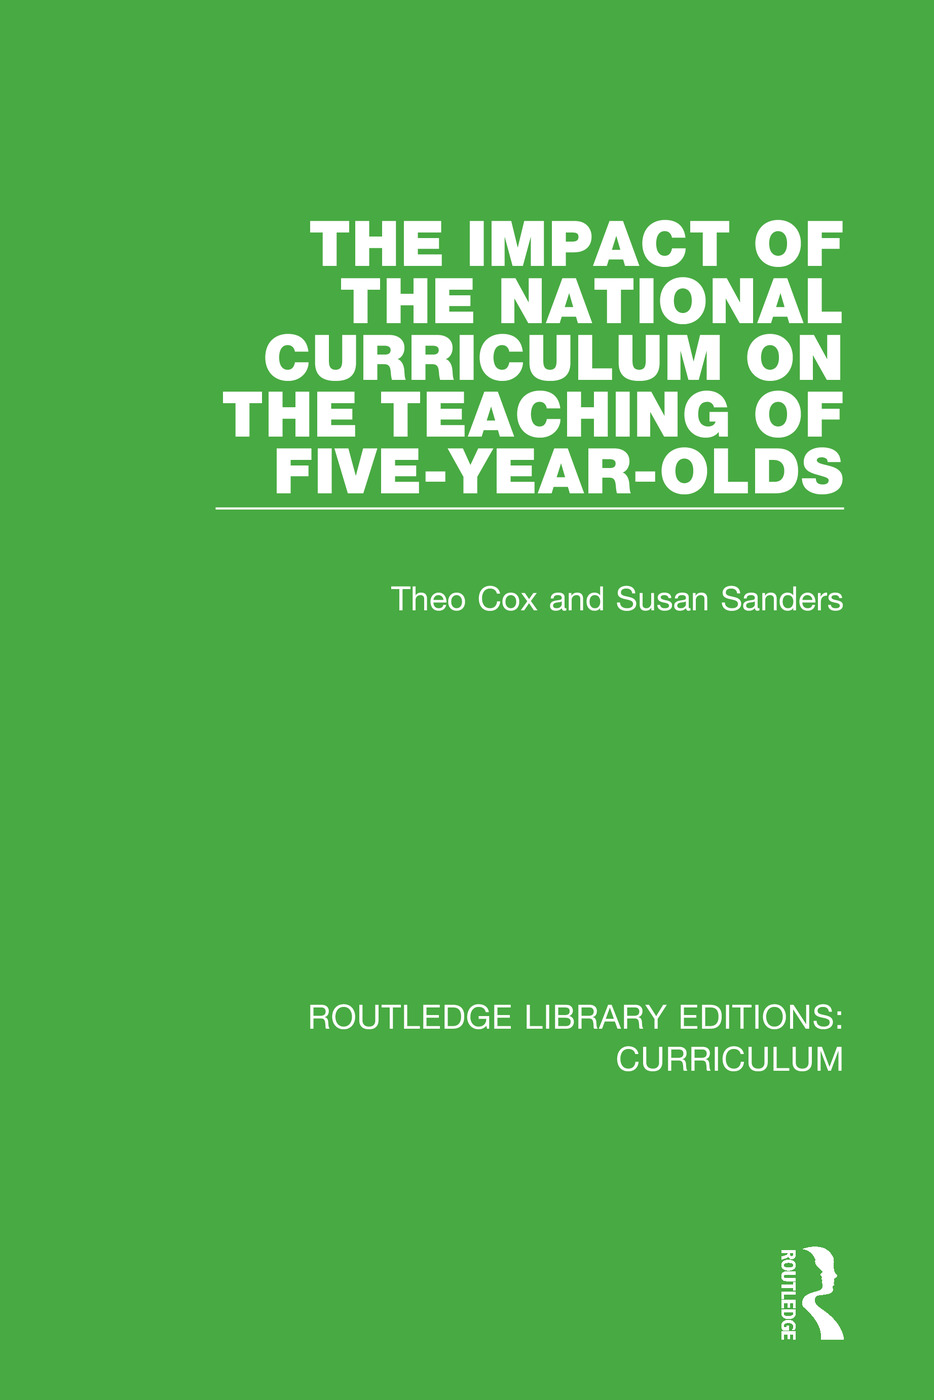 The Impact of the National Curriculum on the Teaching of Five-Year-Olds